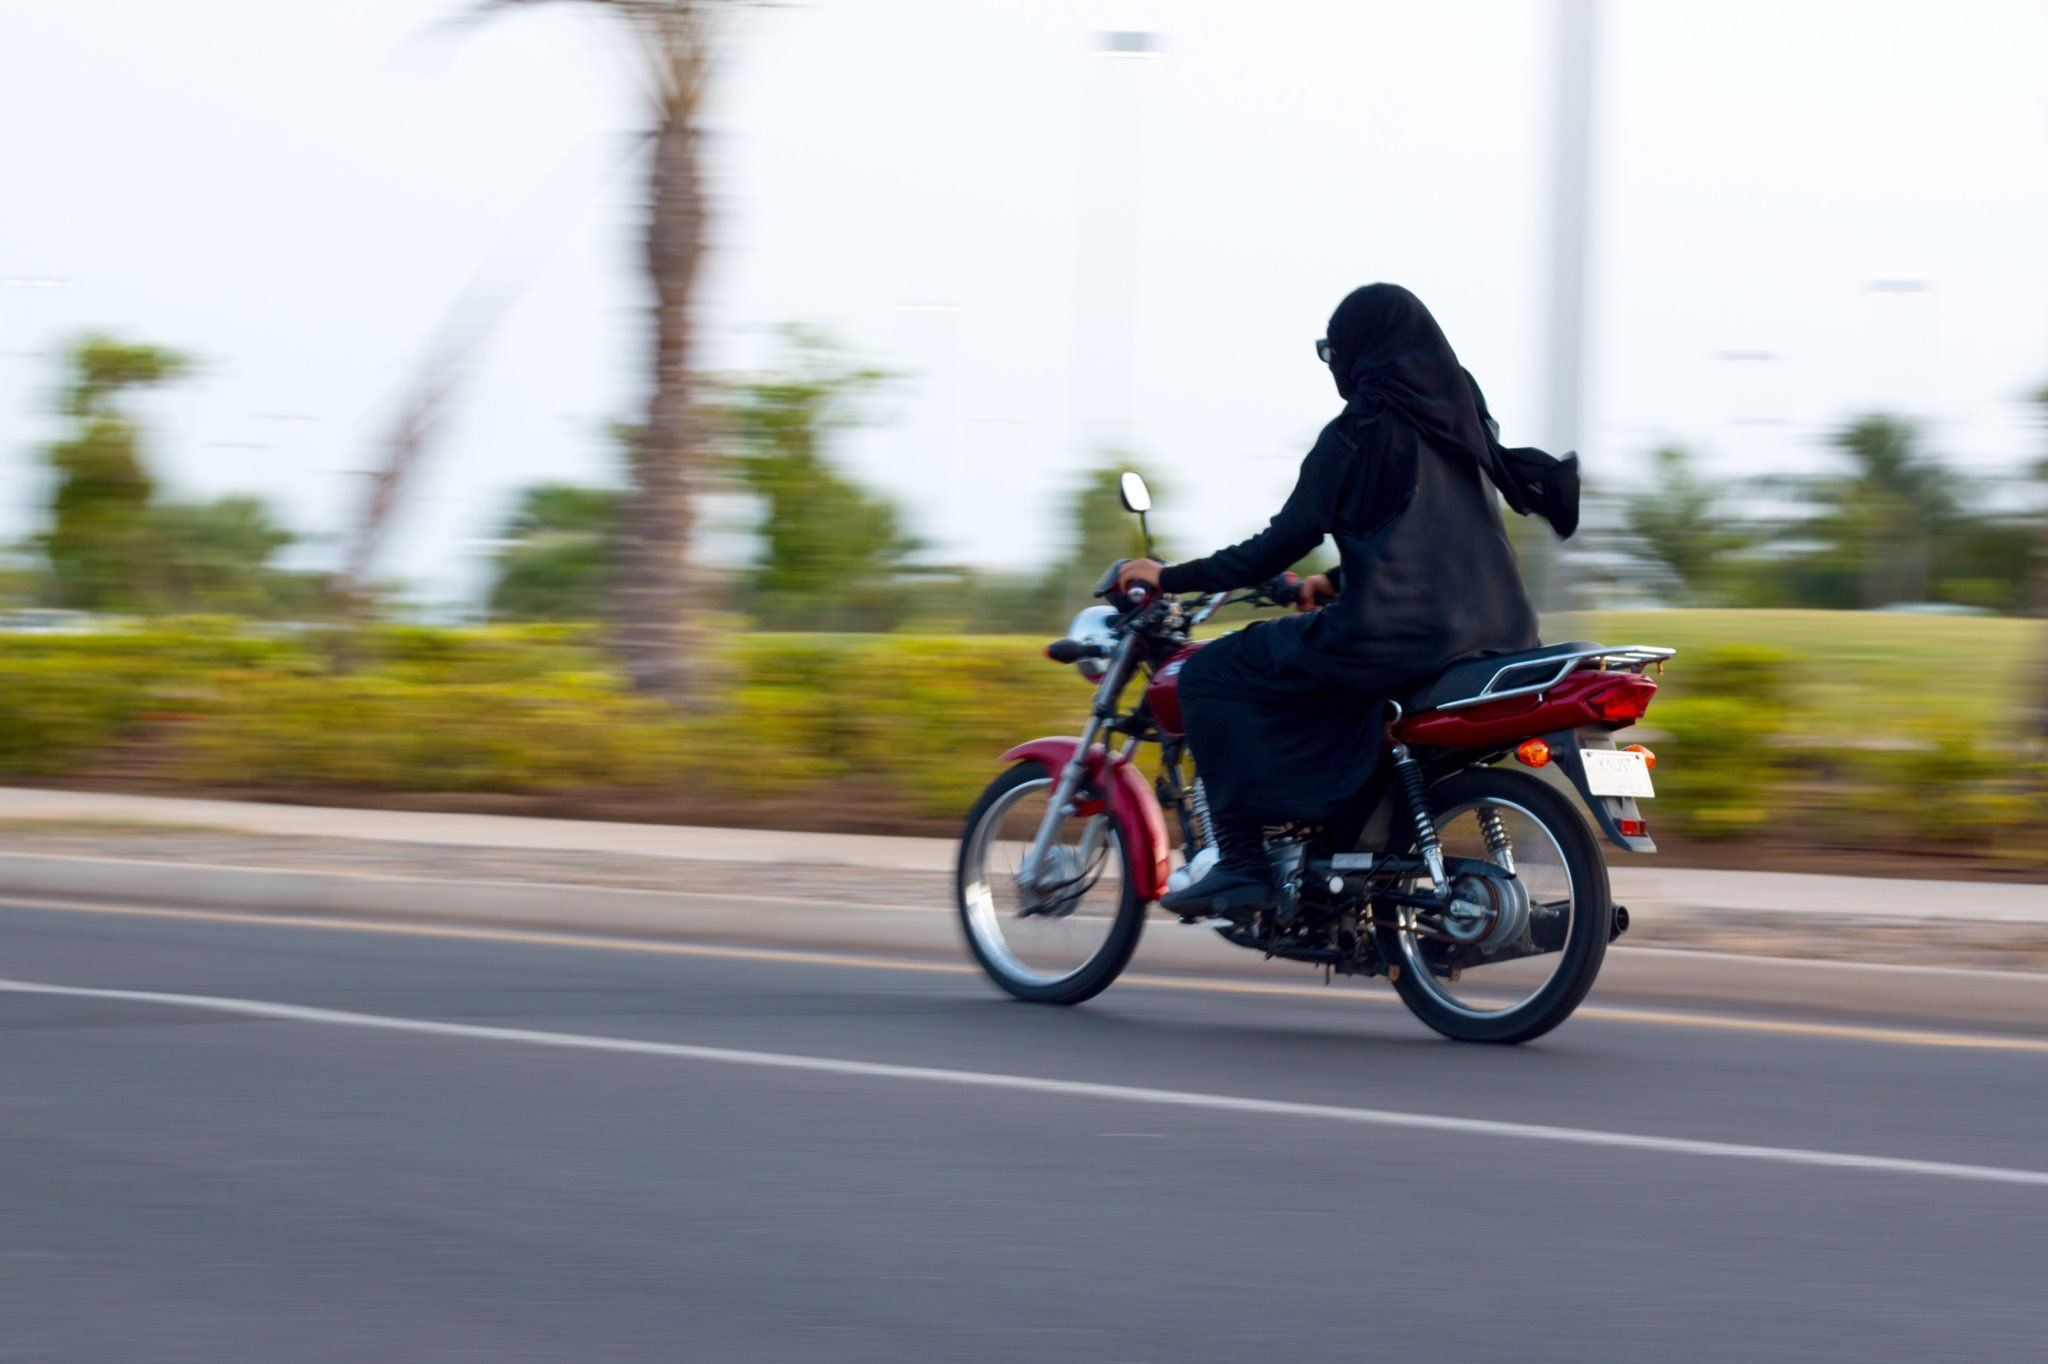 Image result for woman in hijab riding motorcycle on highway